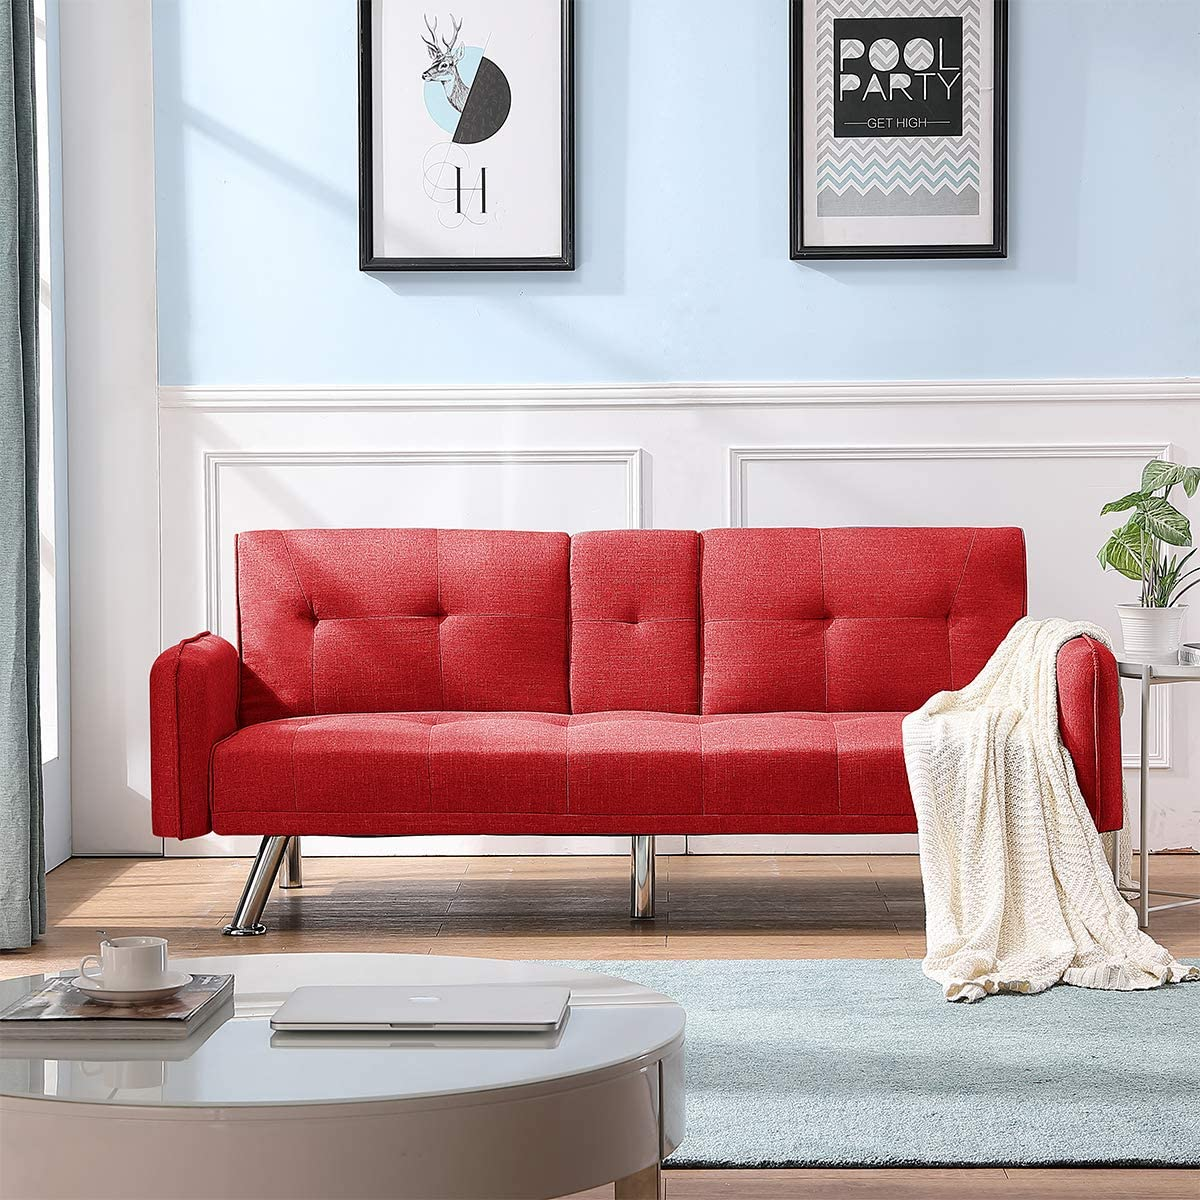 Depointer Sleeper Couch Convertible Feature Modern Futon Beds Lounger Sectional Sofa Couch Fully Reclining Chaise,Red